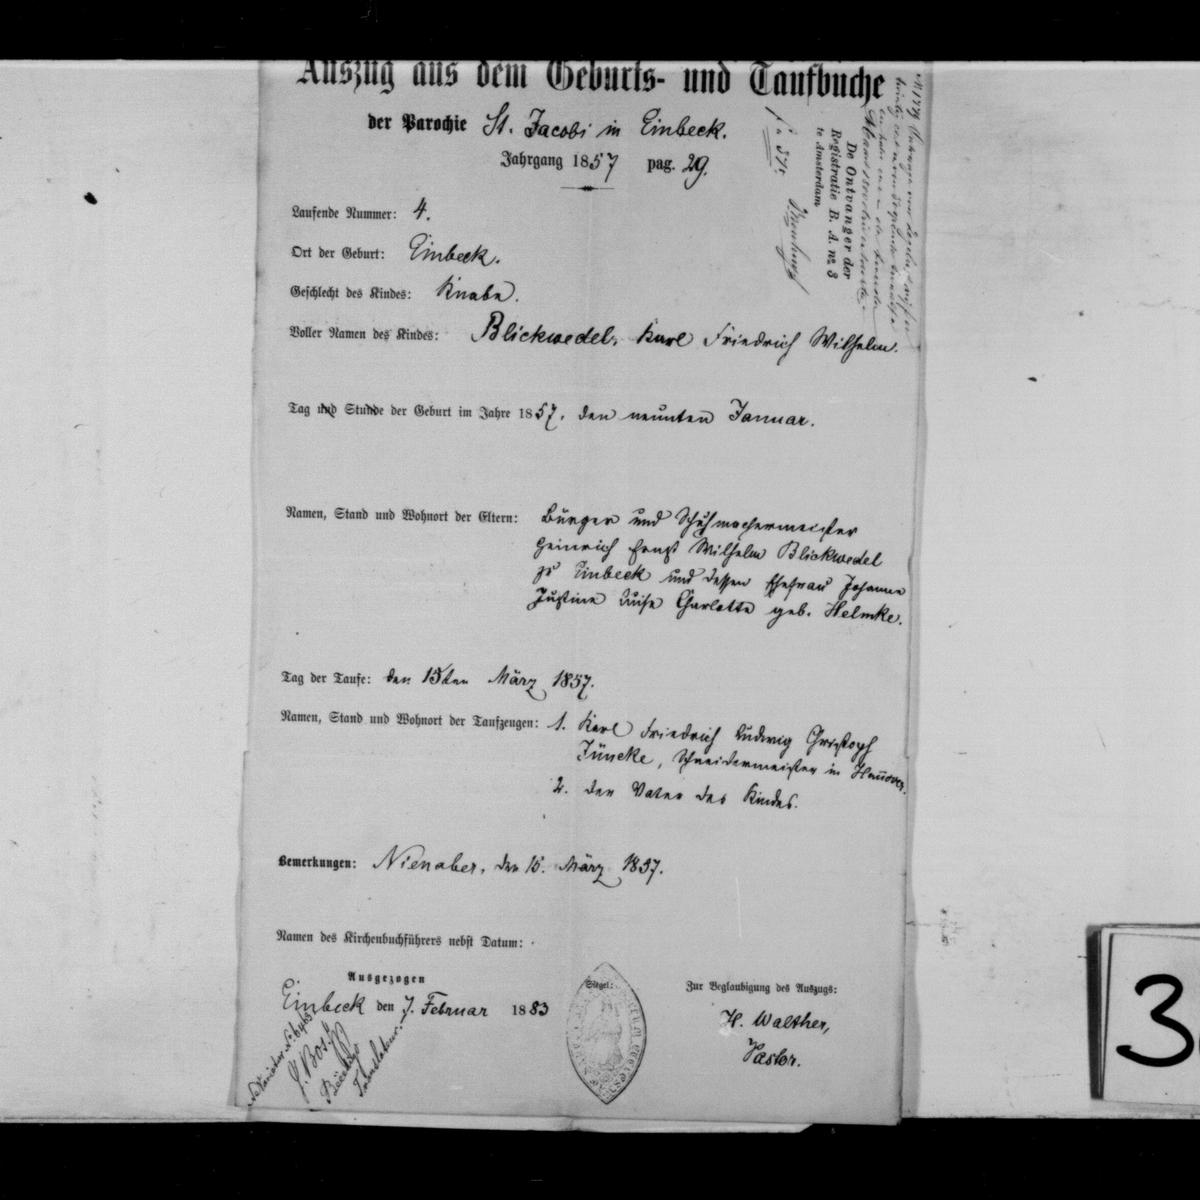 Extract of the baptism record for Karl Friedrich Wilhelm Blickwedel, Der Parochie St. Jacobi,  Einbeck, 1883-02-07